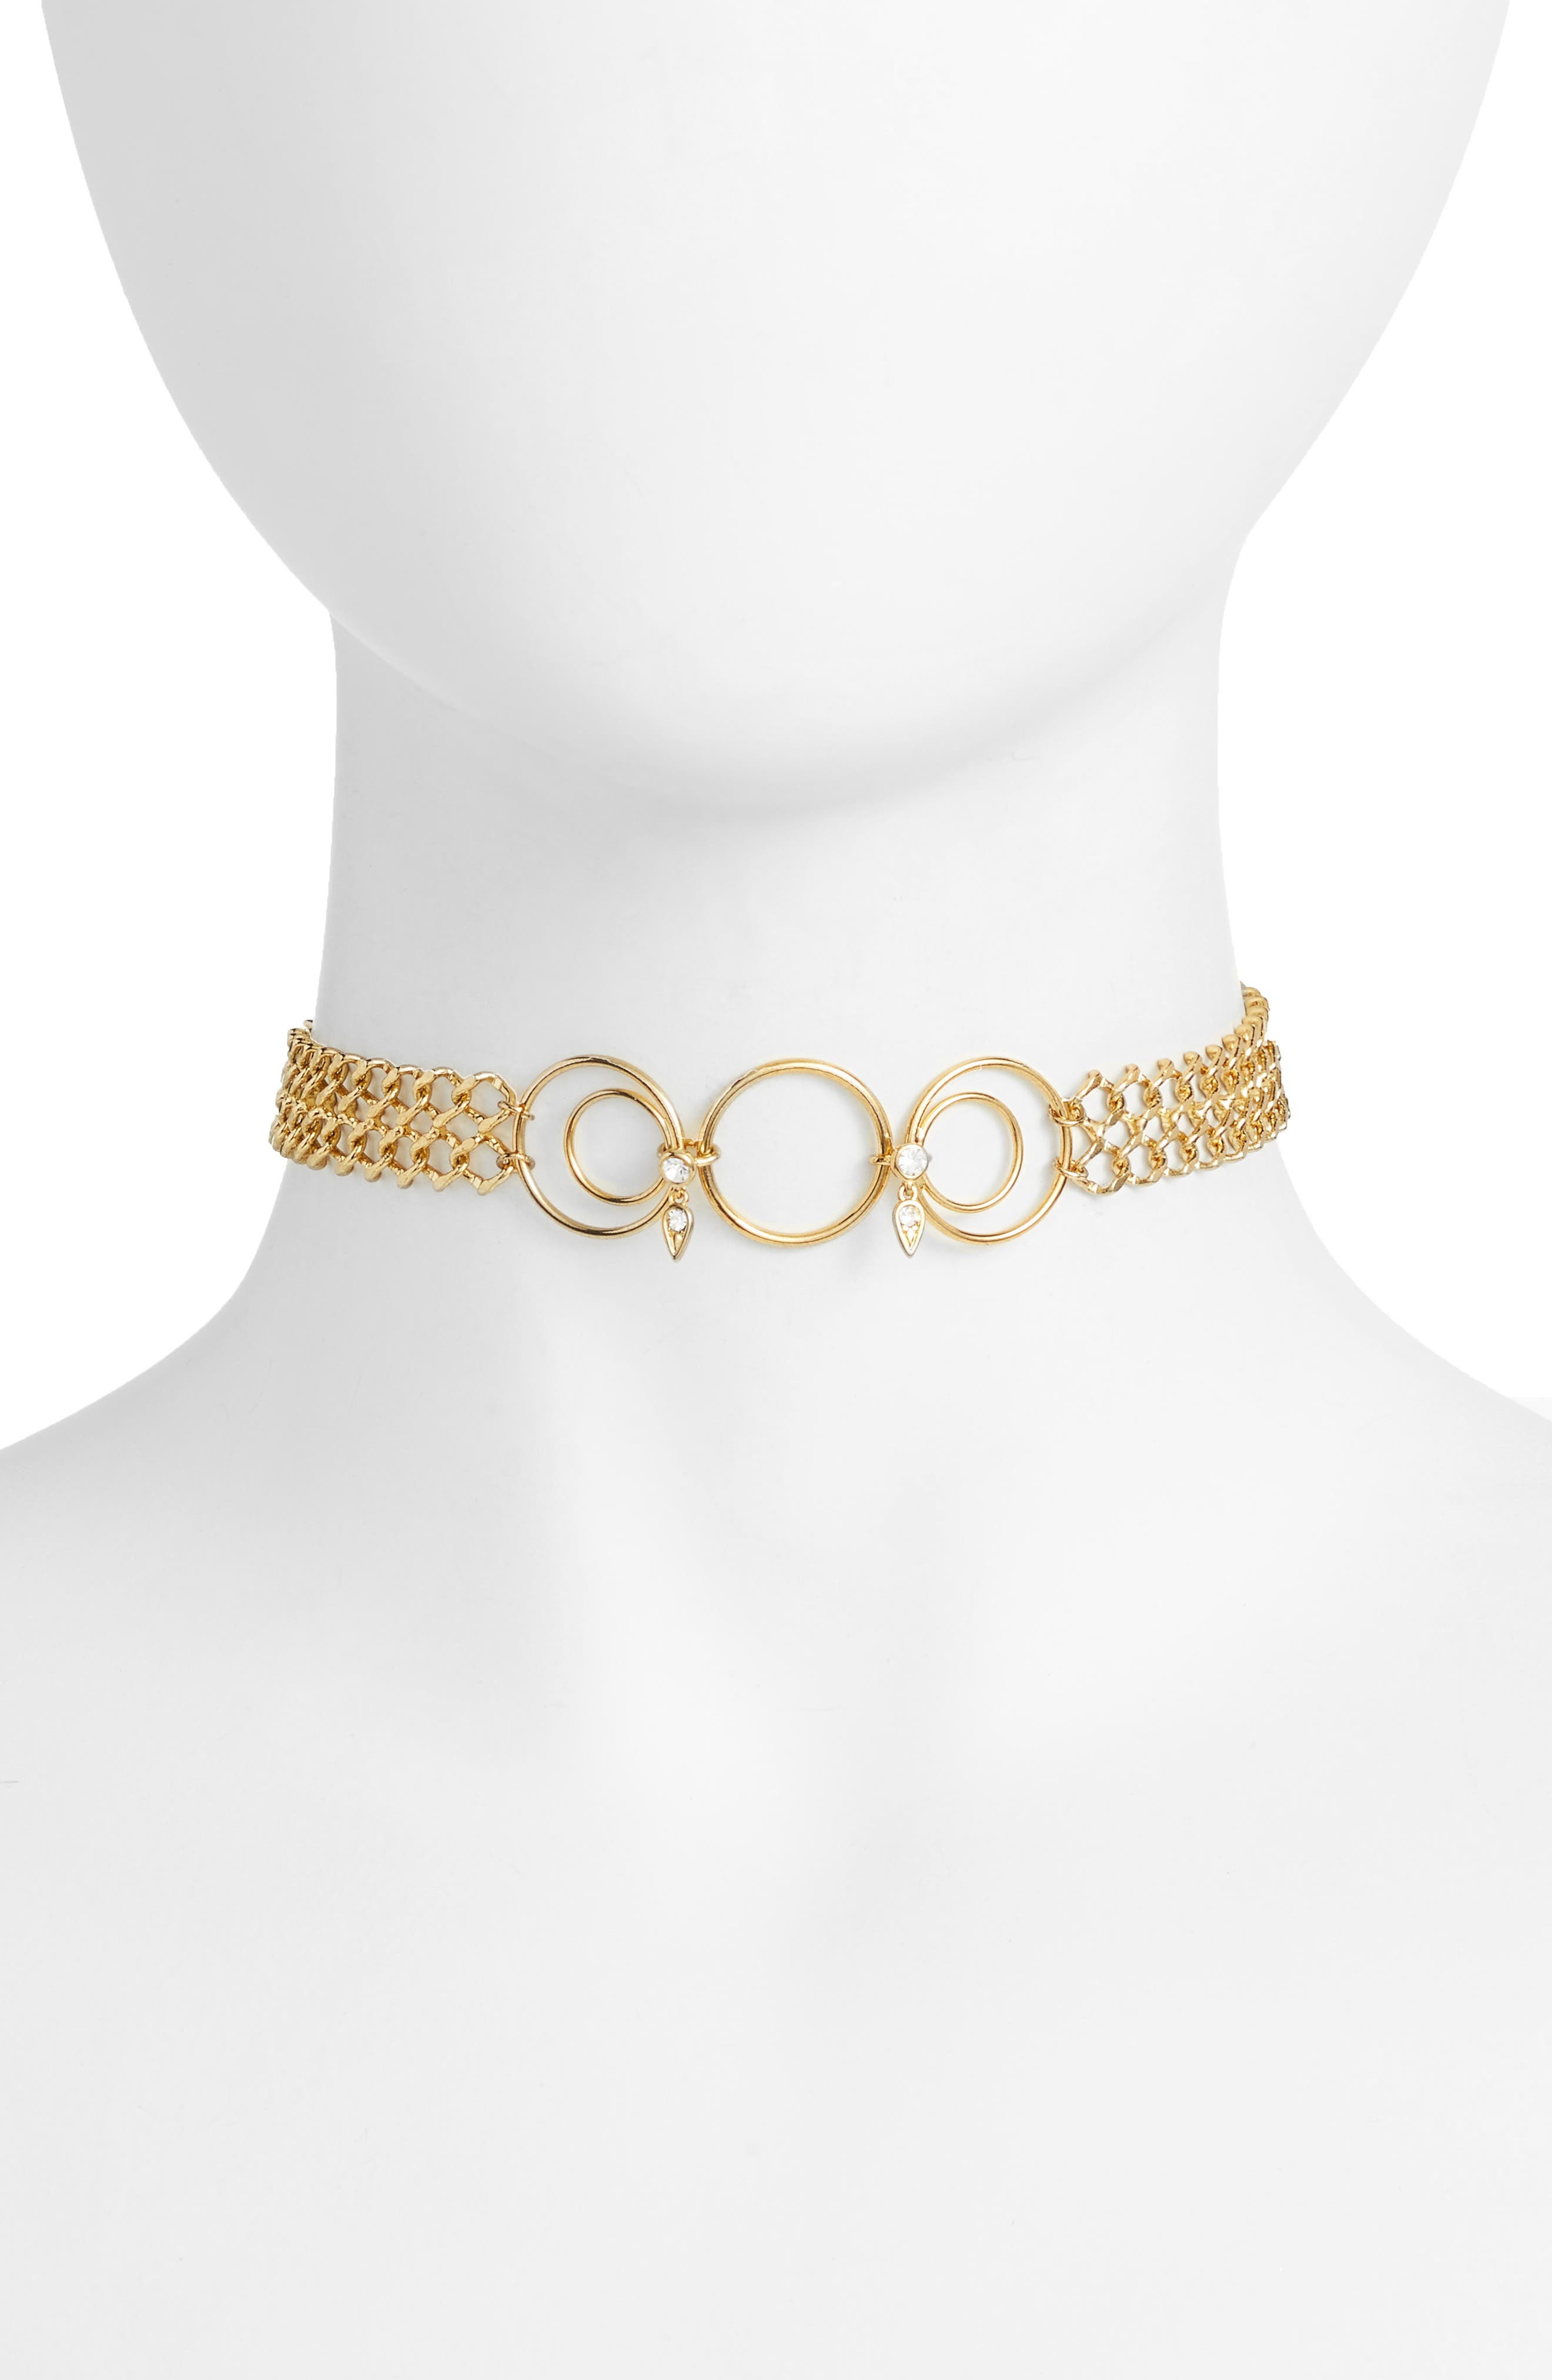 Main Image - Luv AJ Eclipse Choker Necklace